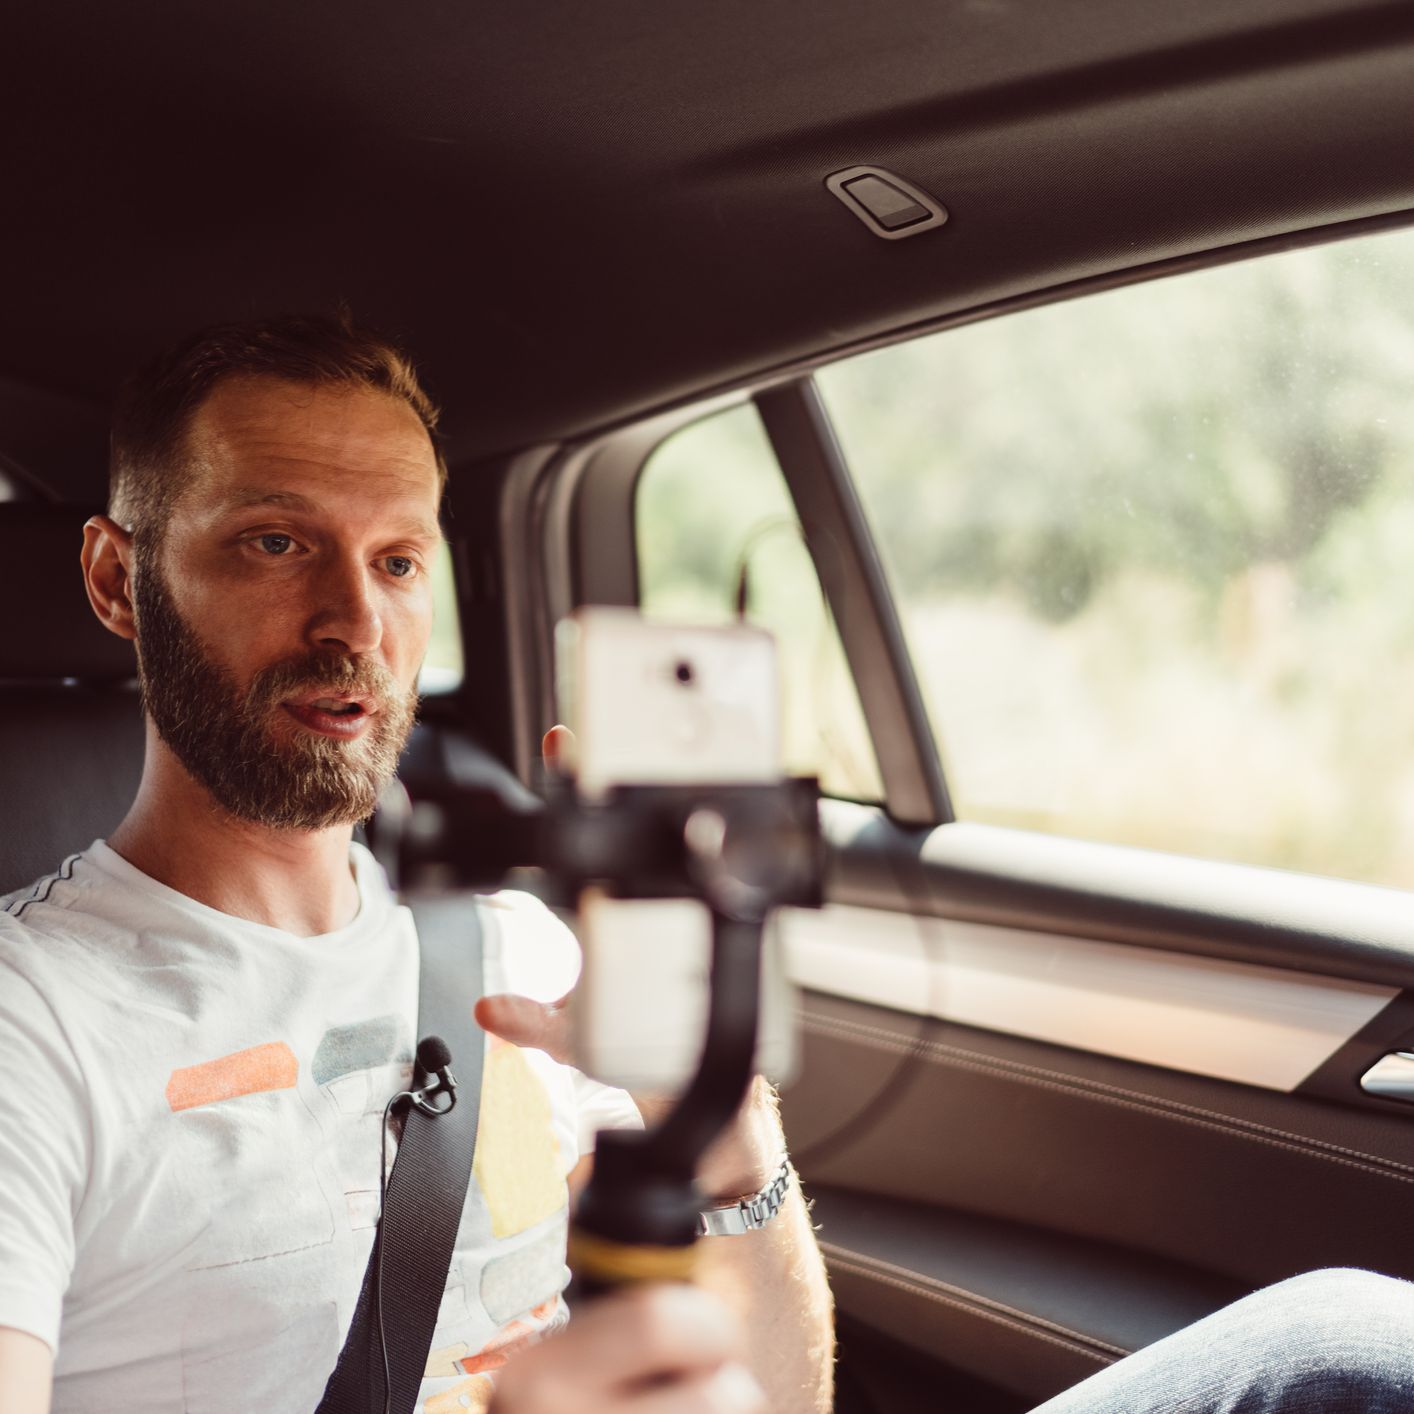 Top Rated Dash Cam Apps